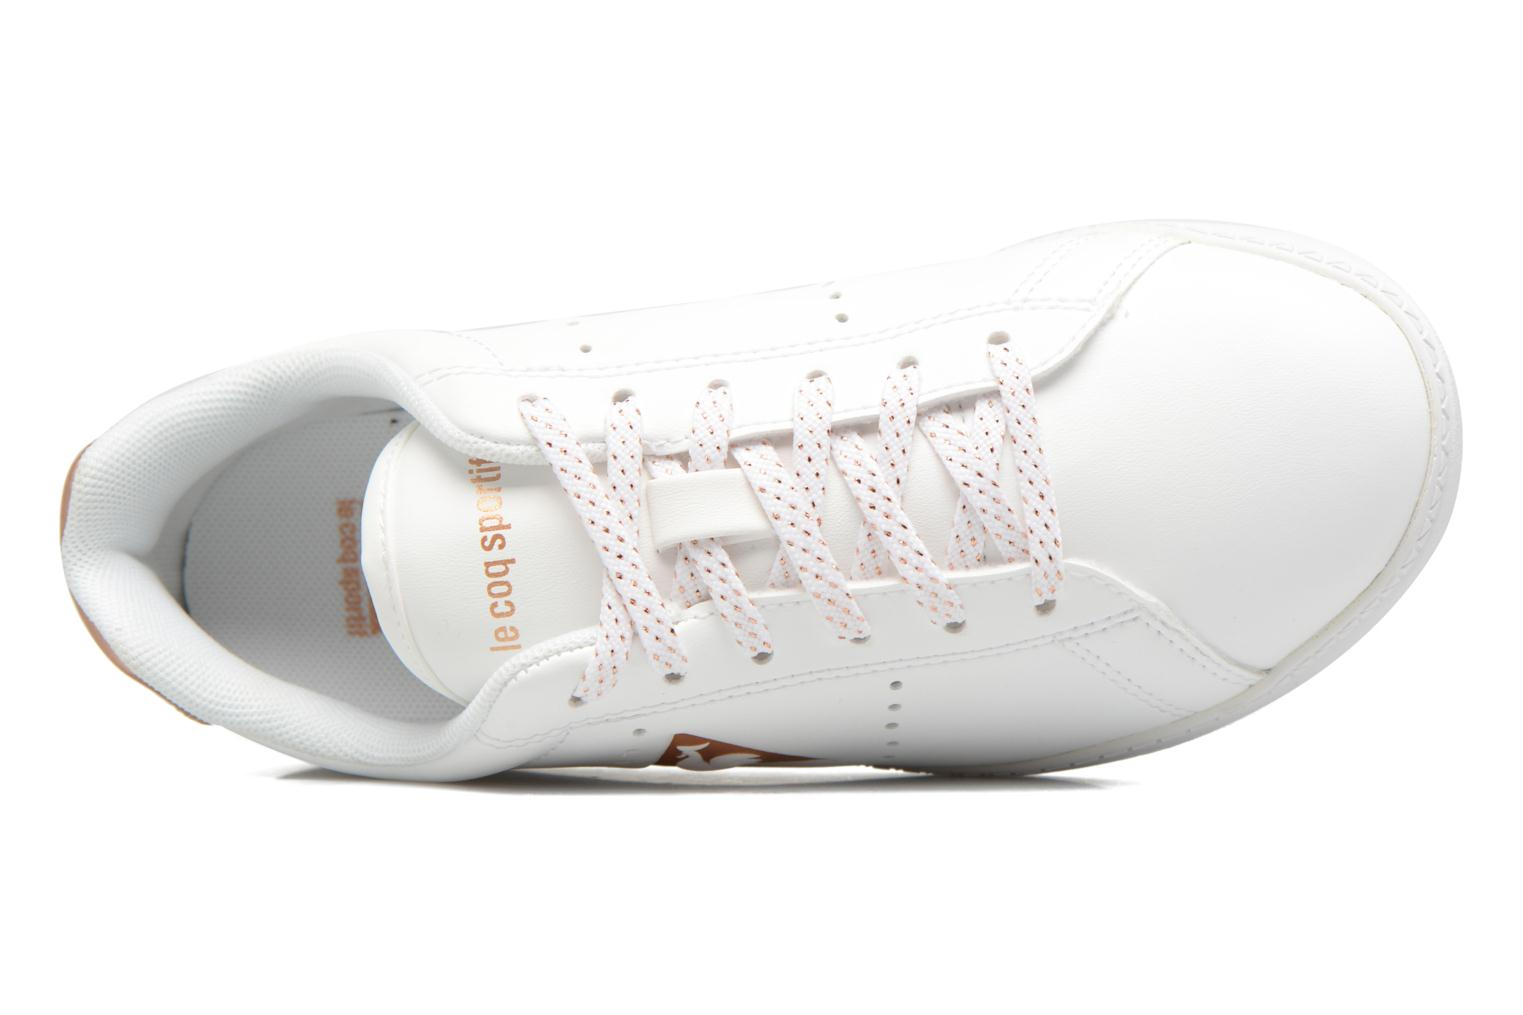 Courtone Gs optical white/rose gold